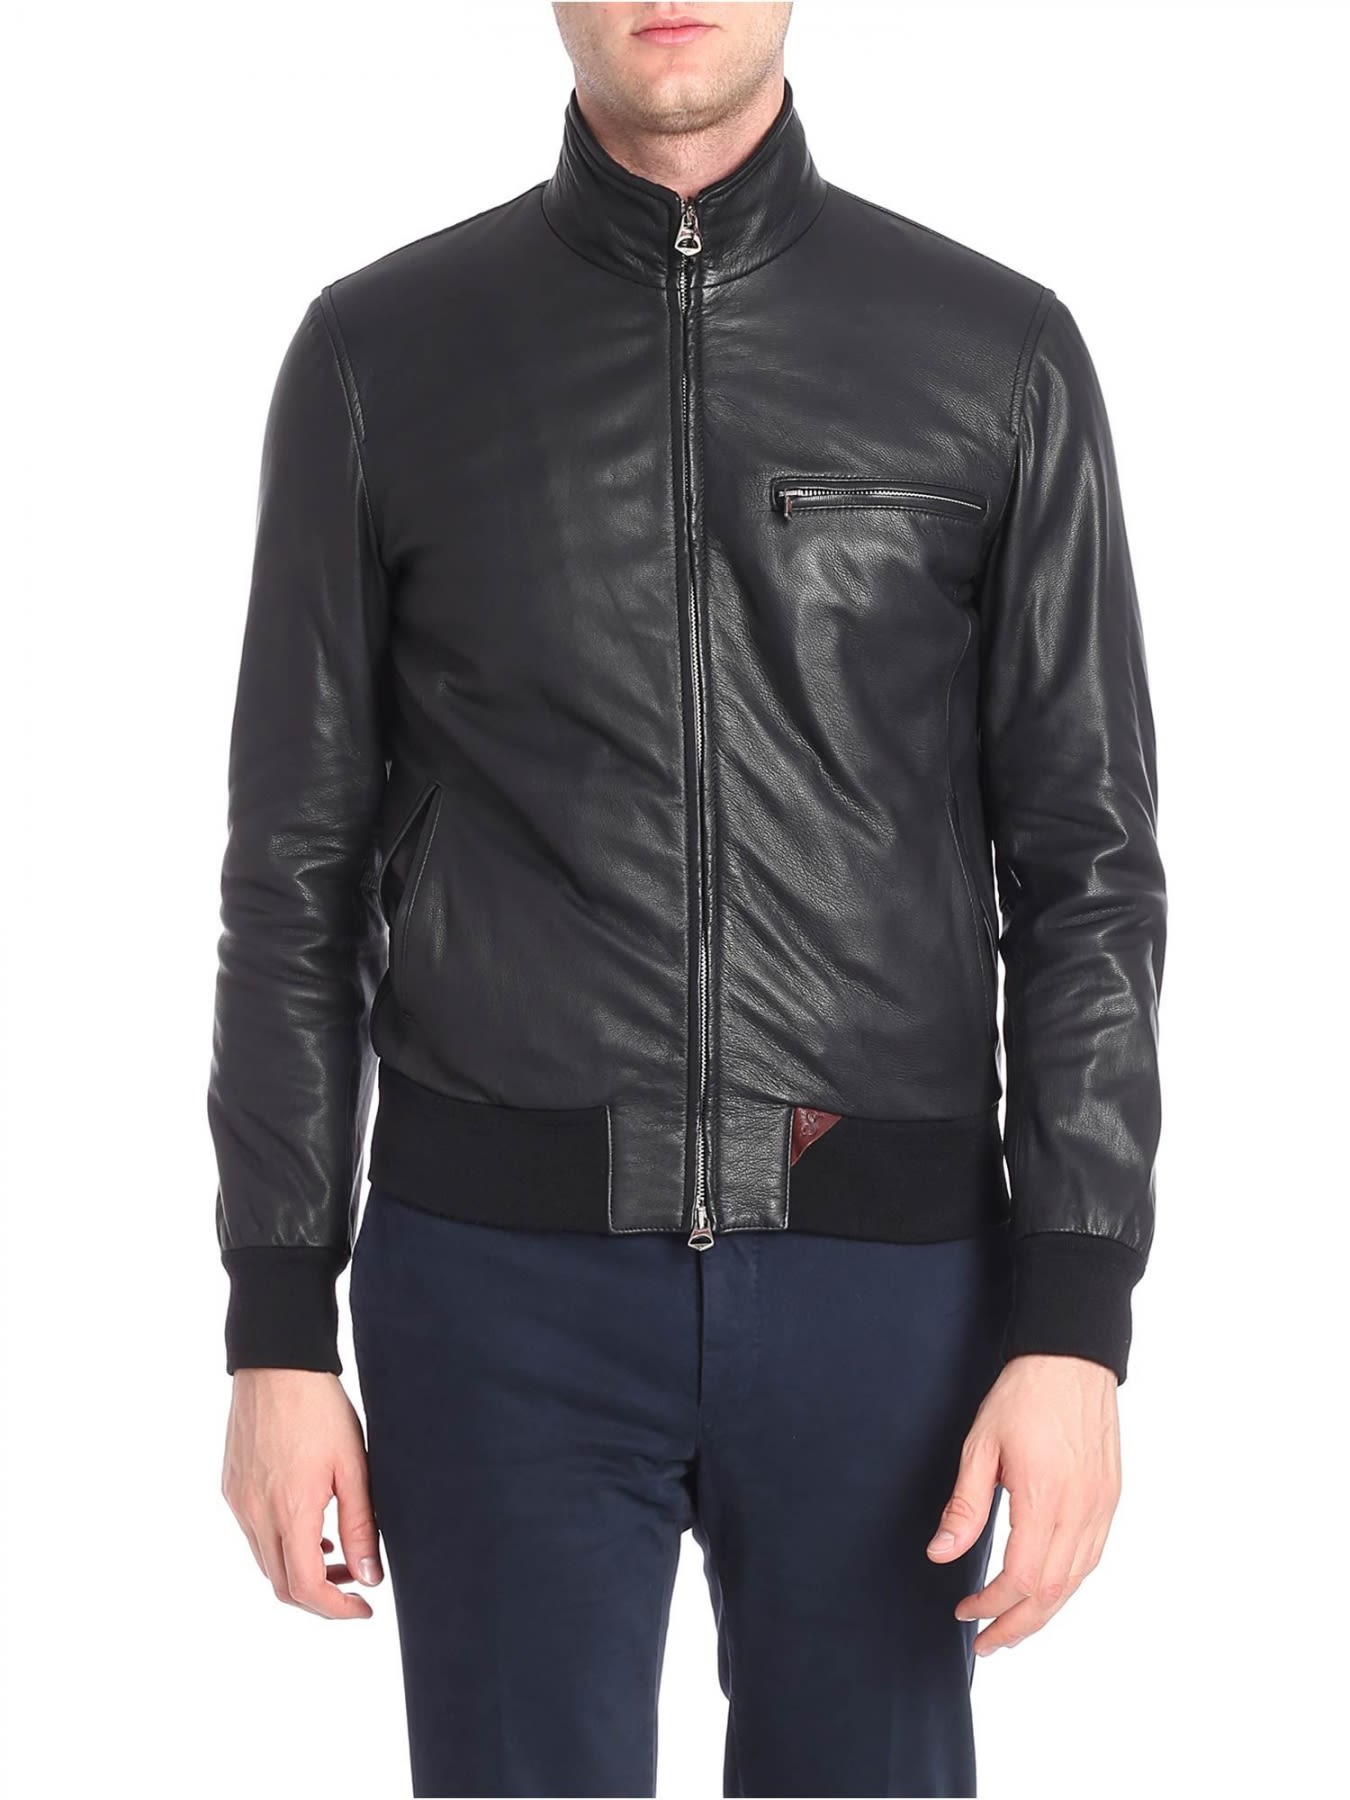 STEWART Leather Jacket in Black